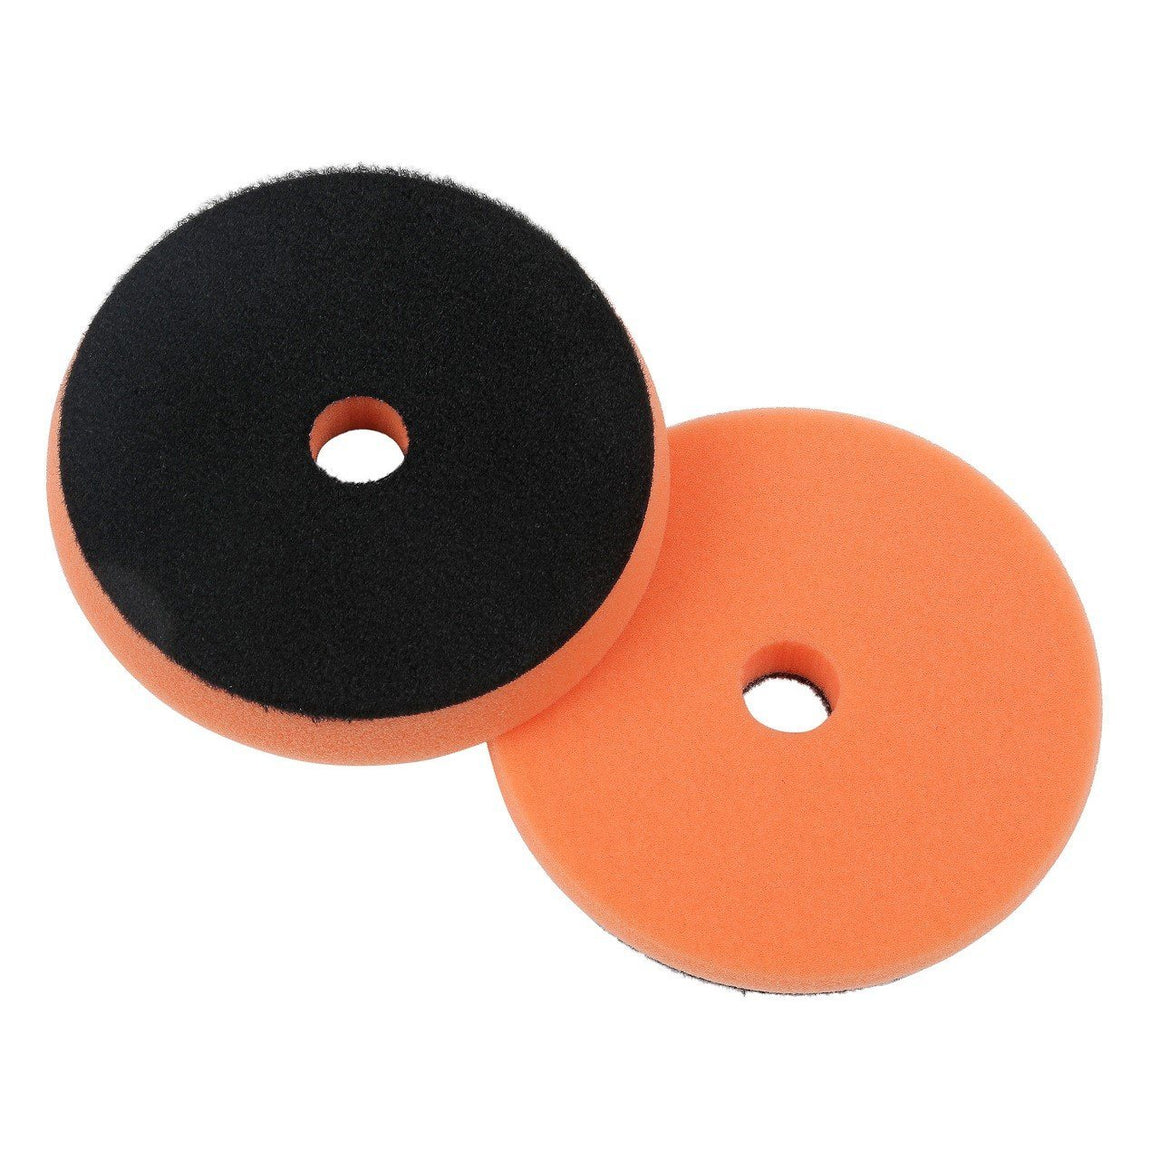 Lake Country Standard Duty Orbital Pad - Orange (Polishing)